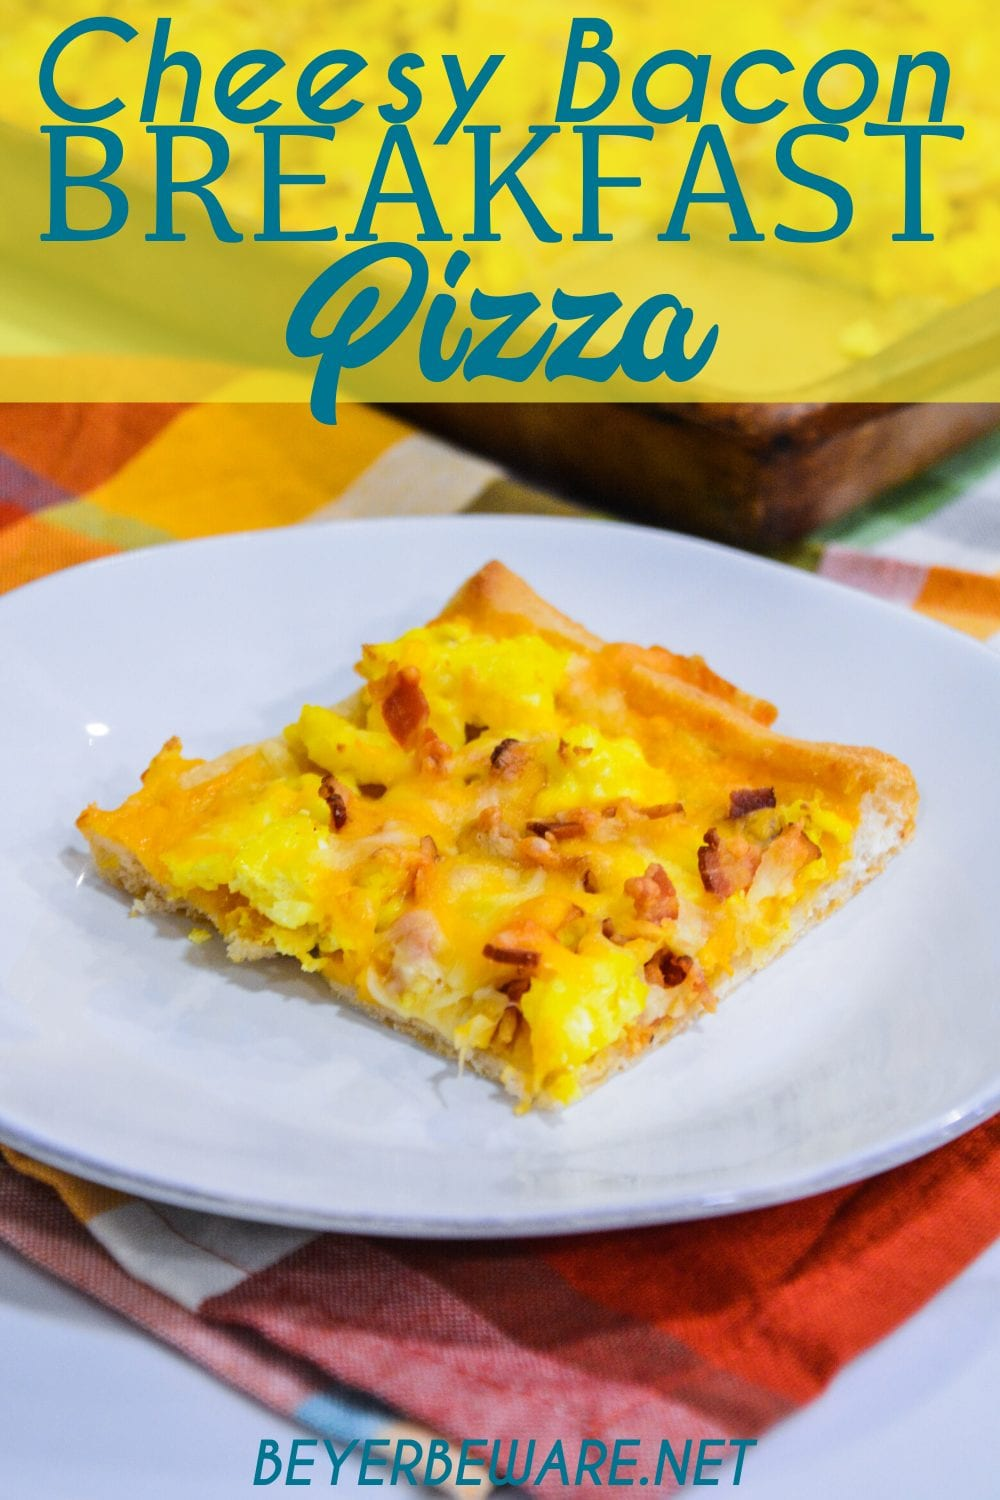 Cheesy bacon breakfast pizza is made with a refrigerated pizza crust, cheese sauce, scrambled egg, and bacon, topped off with more cheese and garlic butter for a decadent breakfast treat.